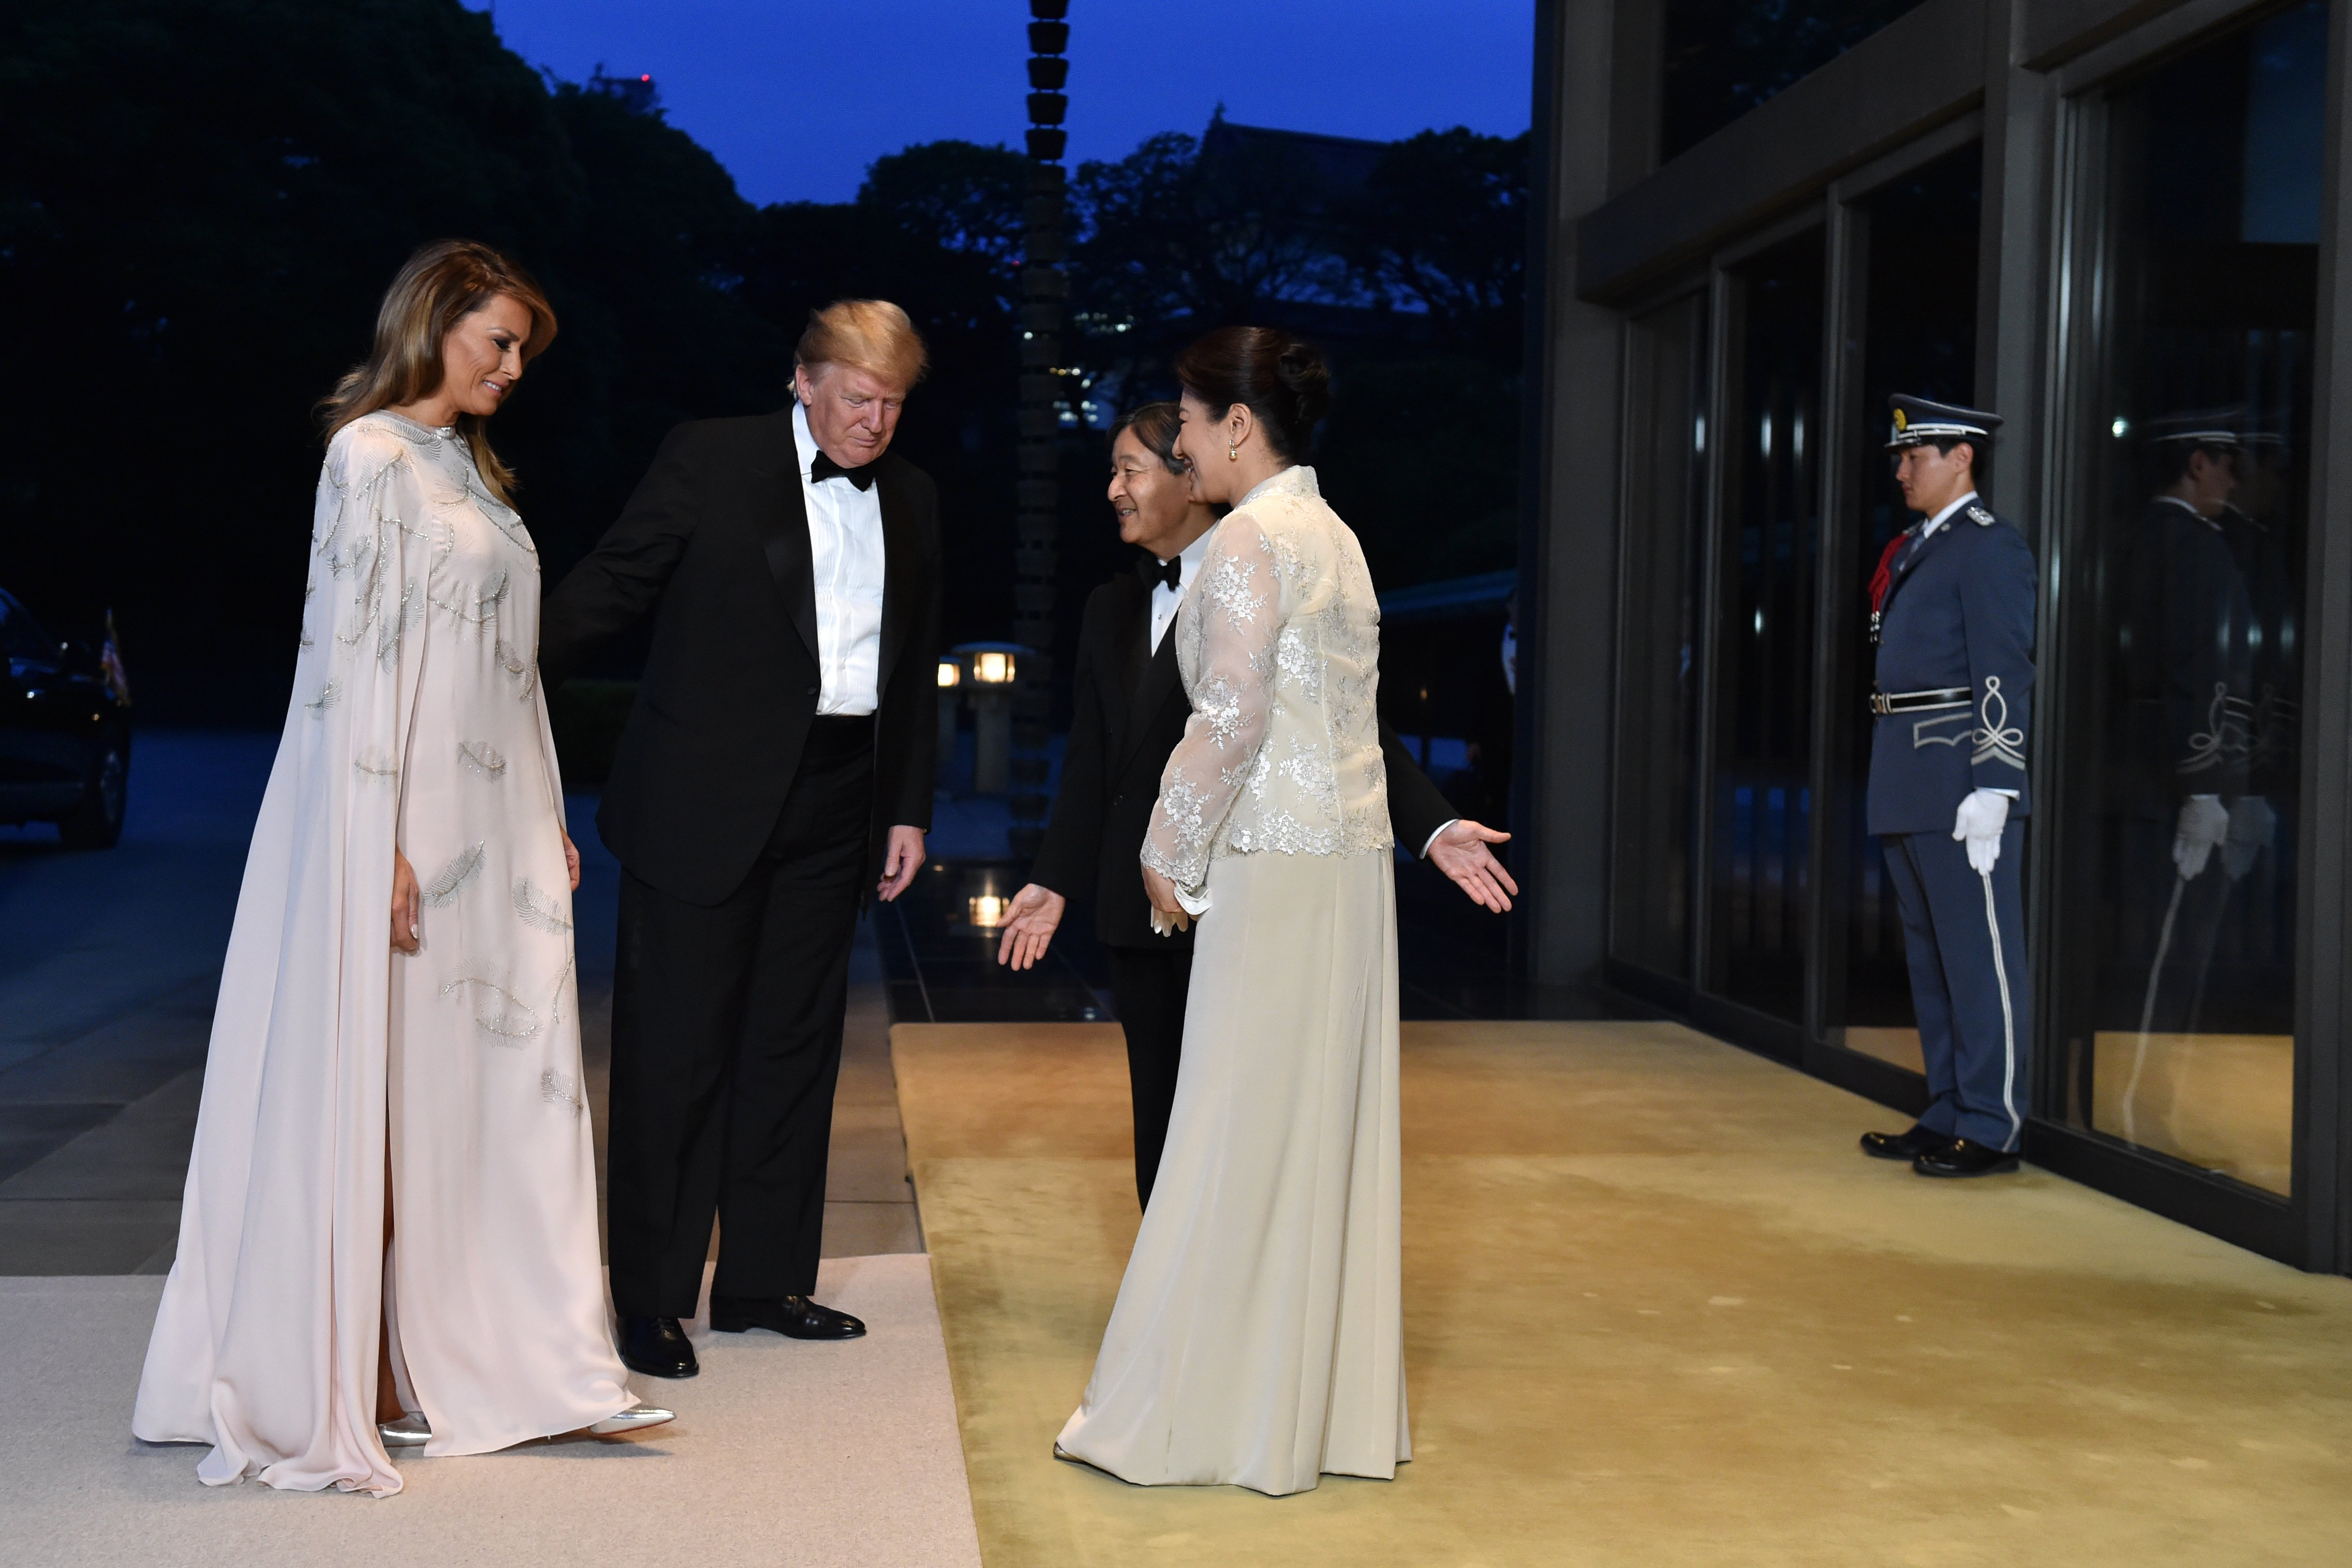 Donald Trump and Melania Trump being greeted by Japan's Emperor Naruhito and Empress Masako at the Imperial Palace in Tokyo, Japan   Photo: Getty Images